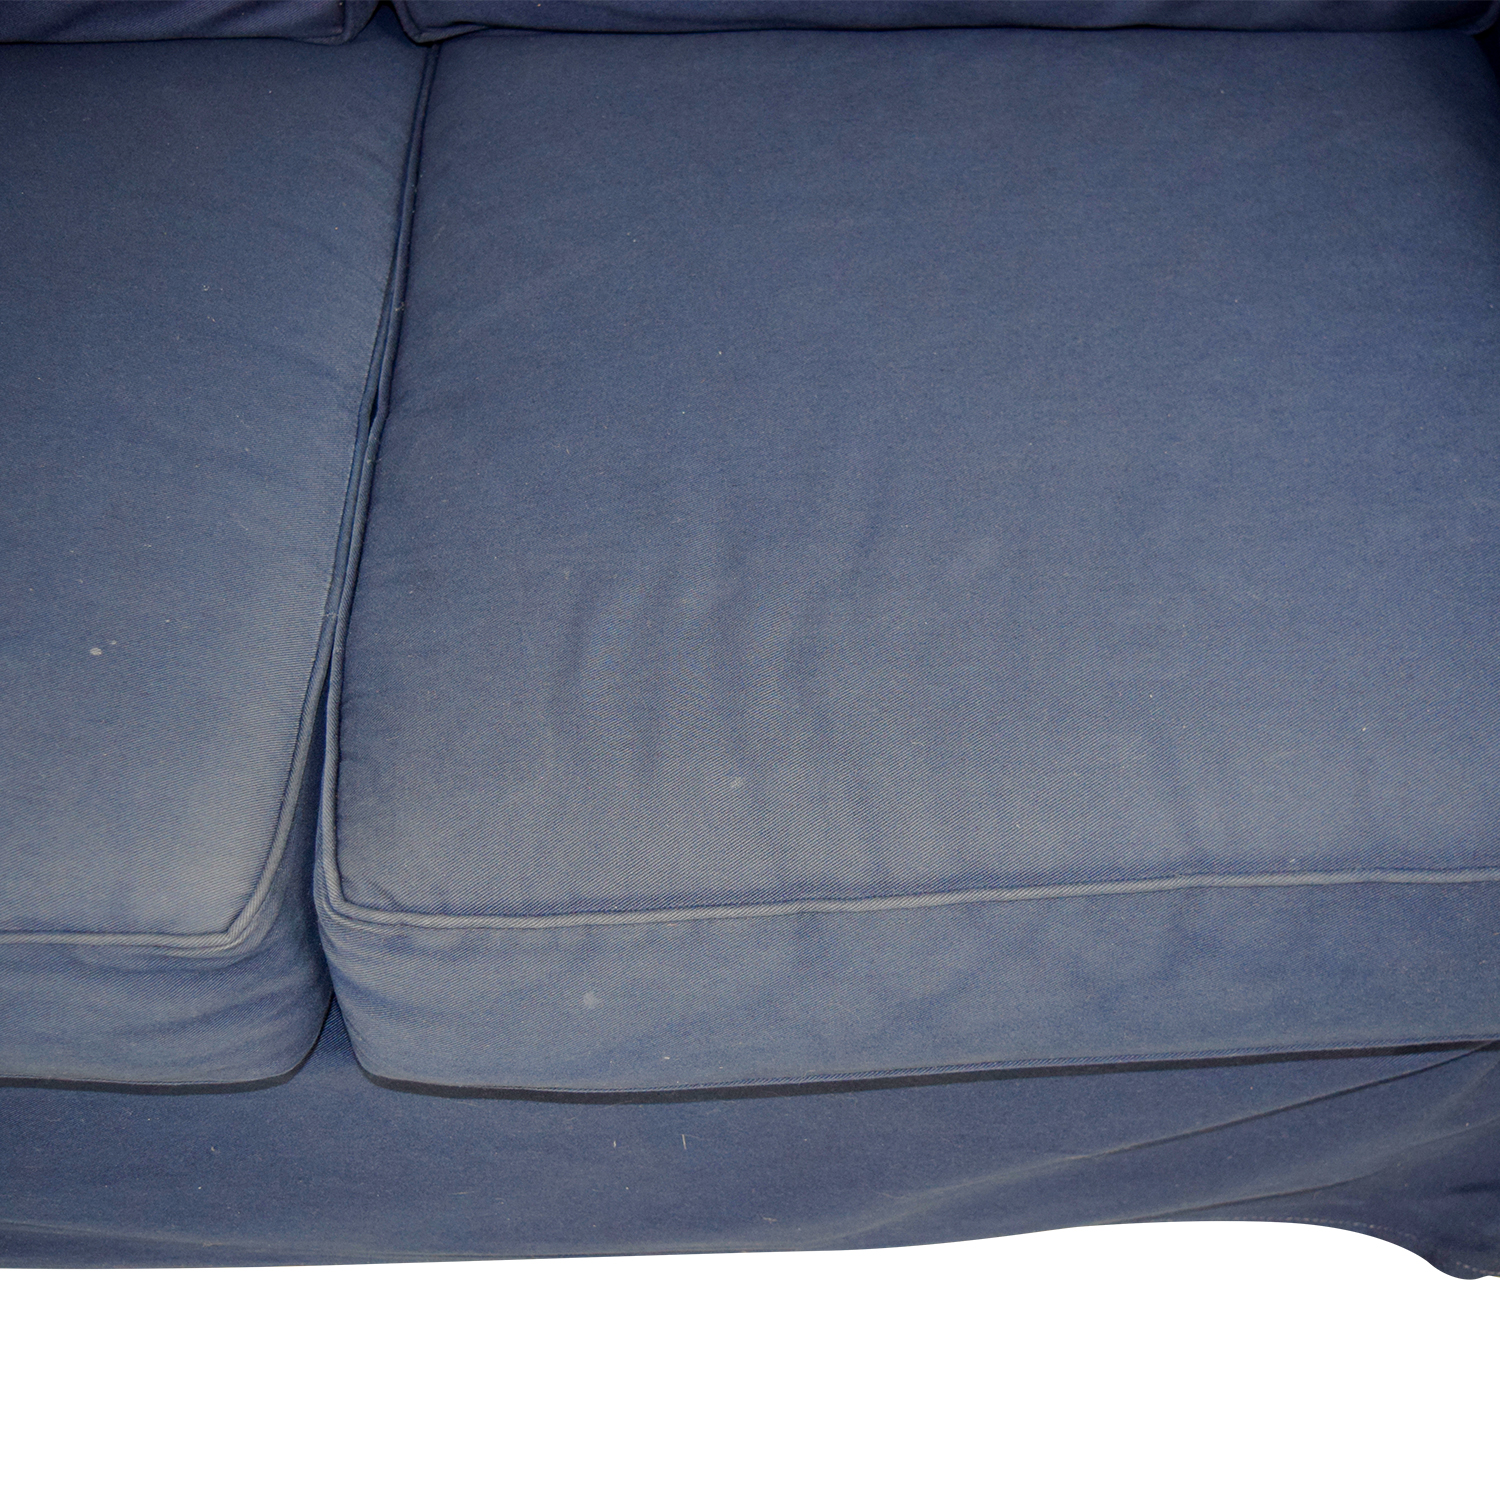 shop Pottery Barn Pottery Barn Cameron Navy Twill Slipcovered Loveseat online